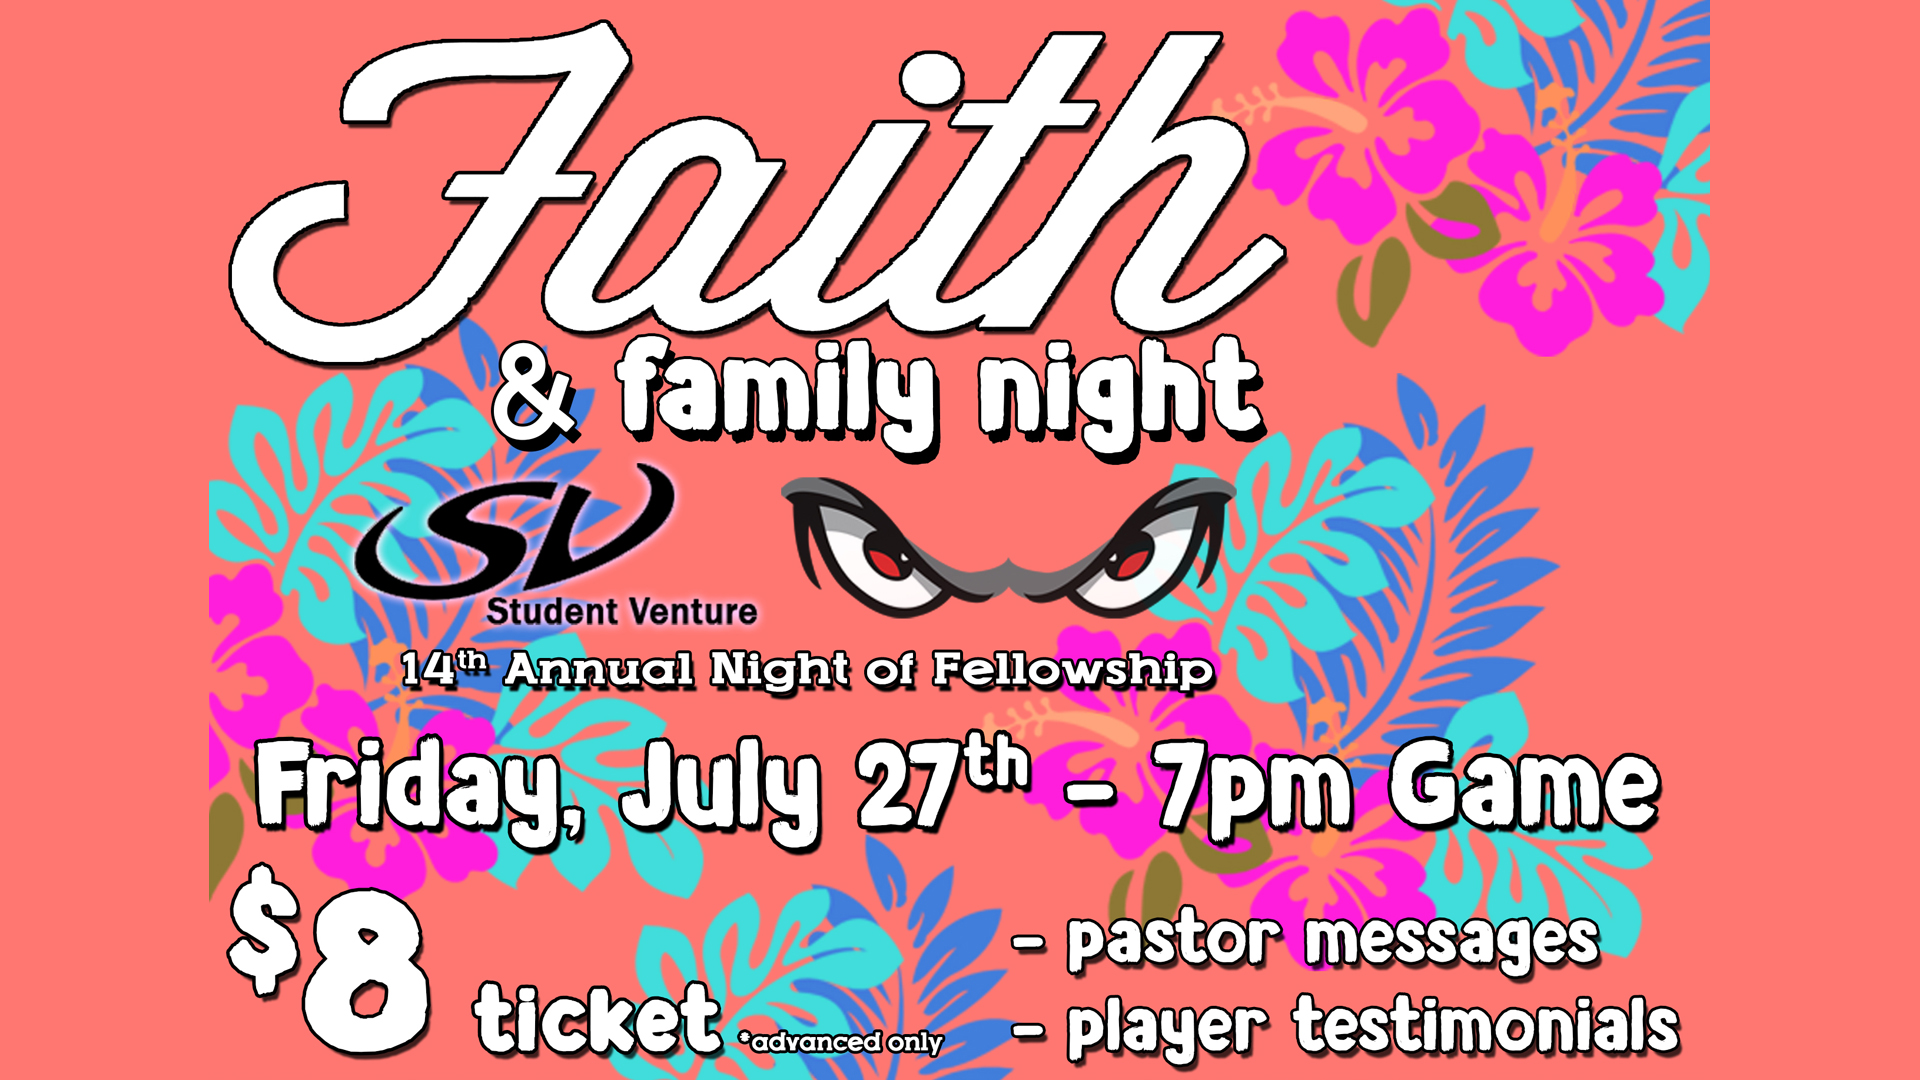 FaithAndFamilyNight18-3.jpg